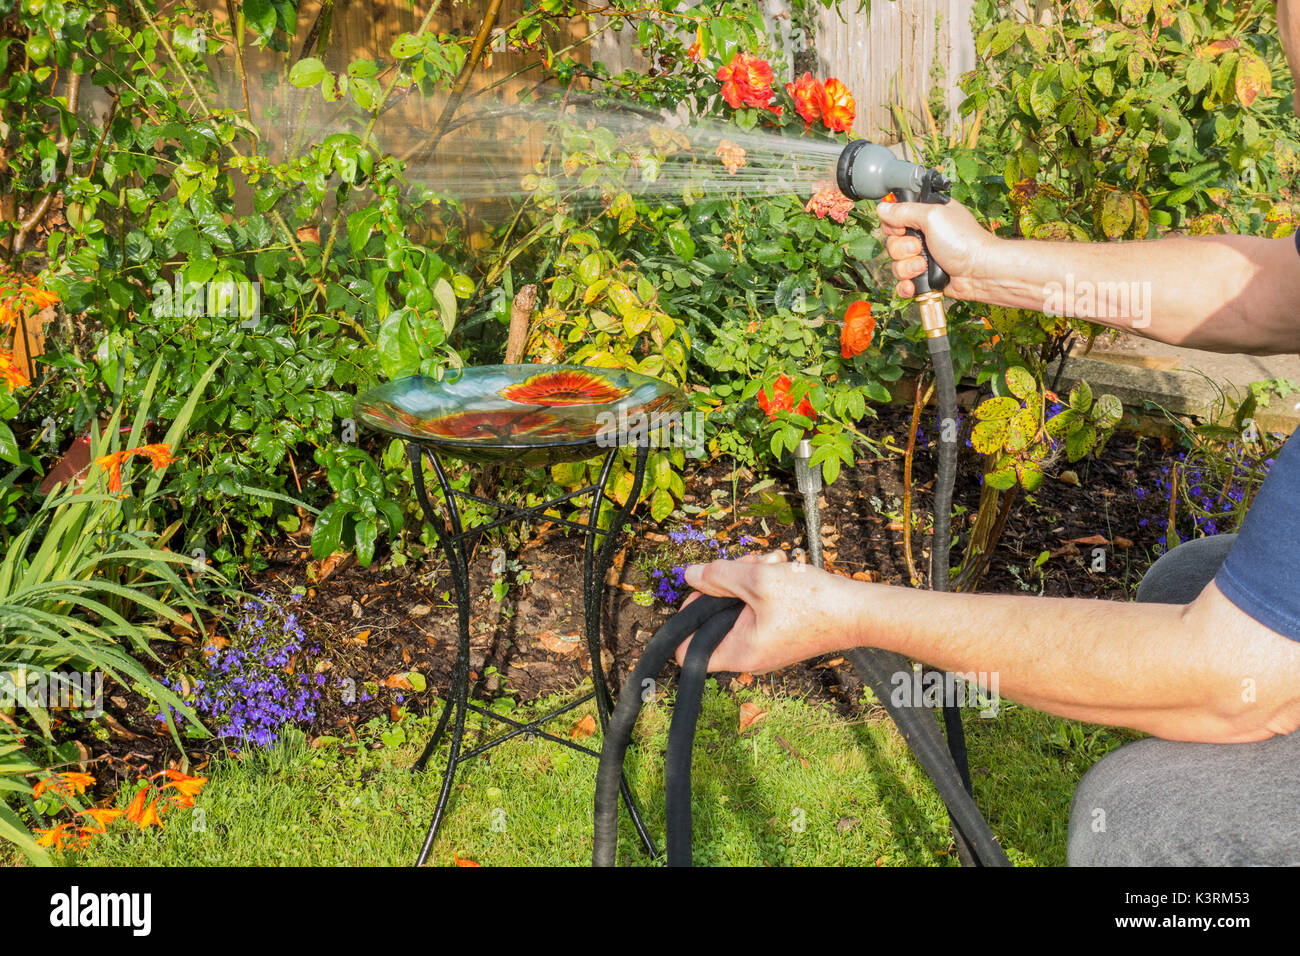 An older man watering his garden plants, early autumn, with a hose and spray attachment. Langtoft, Lincolnshire, England, UK. - Stock Image